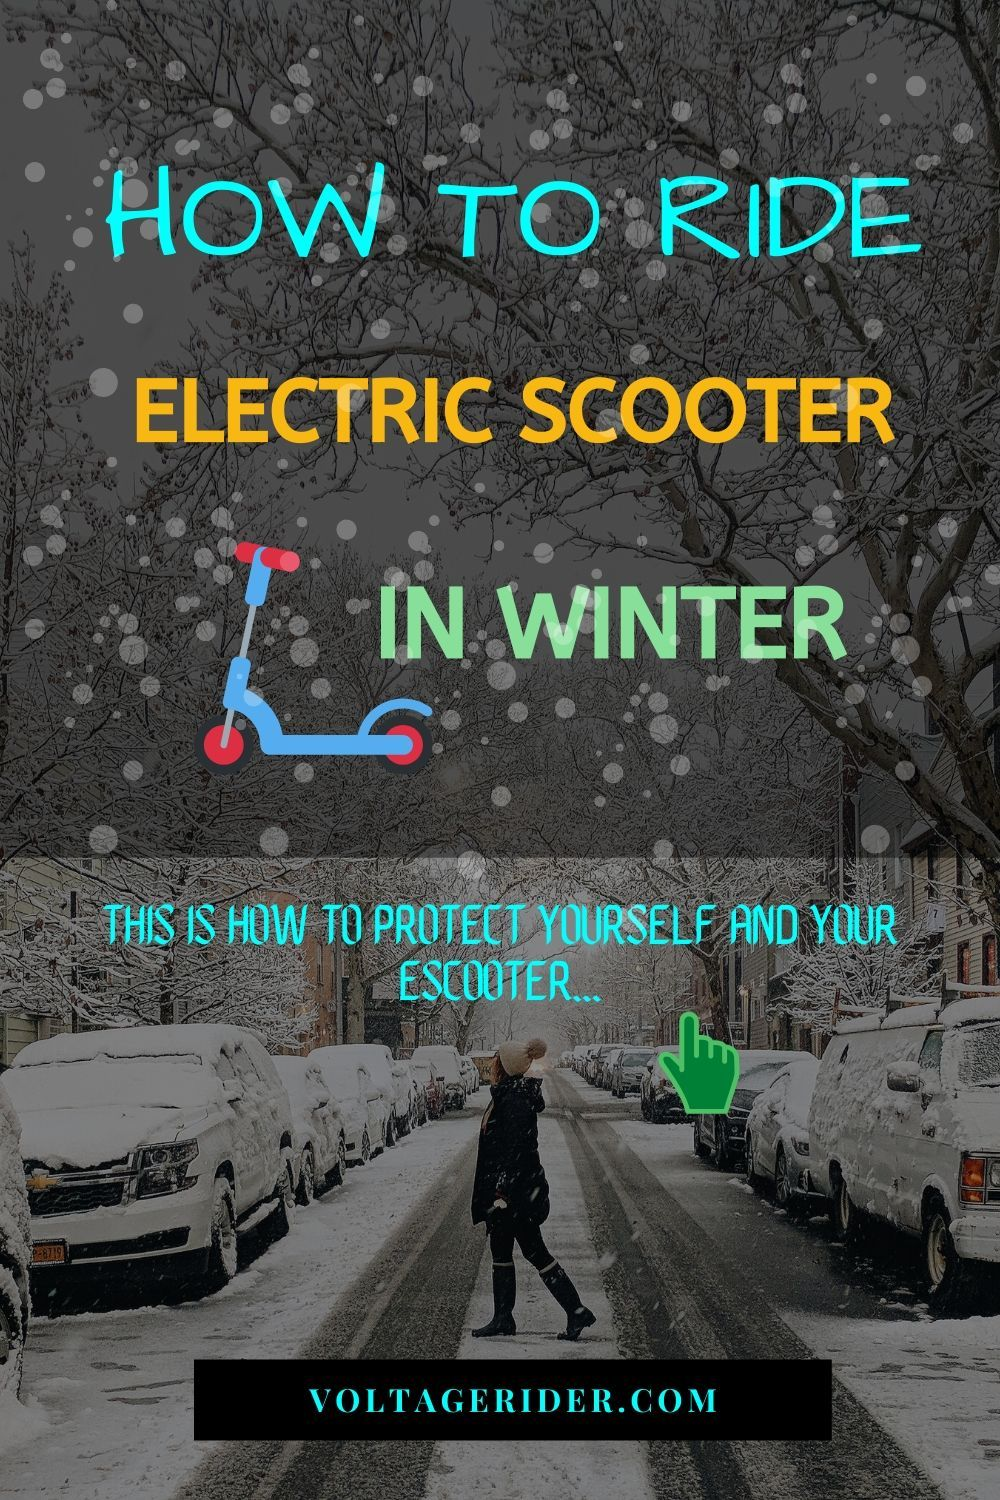 Do not get outside with your escooter before you go through this guide on how to ride your electric scooter in winter. Get ready to apply all the winter tips for riding electric scooter. Keep riding electric scooter & be safe!  #electricscooter #escooter #escooters #electricscooters #electricscooterwinter #electricscootertips #escooterwinter #ridinginwinter #wintertipsescooter #wintertips #voltagerider #wintertires #micromobility #urbanmobility #esoot #girlsonscooters #rideelectric